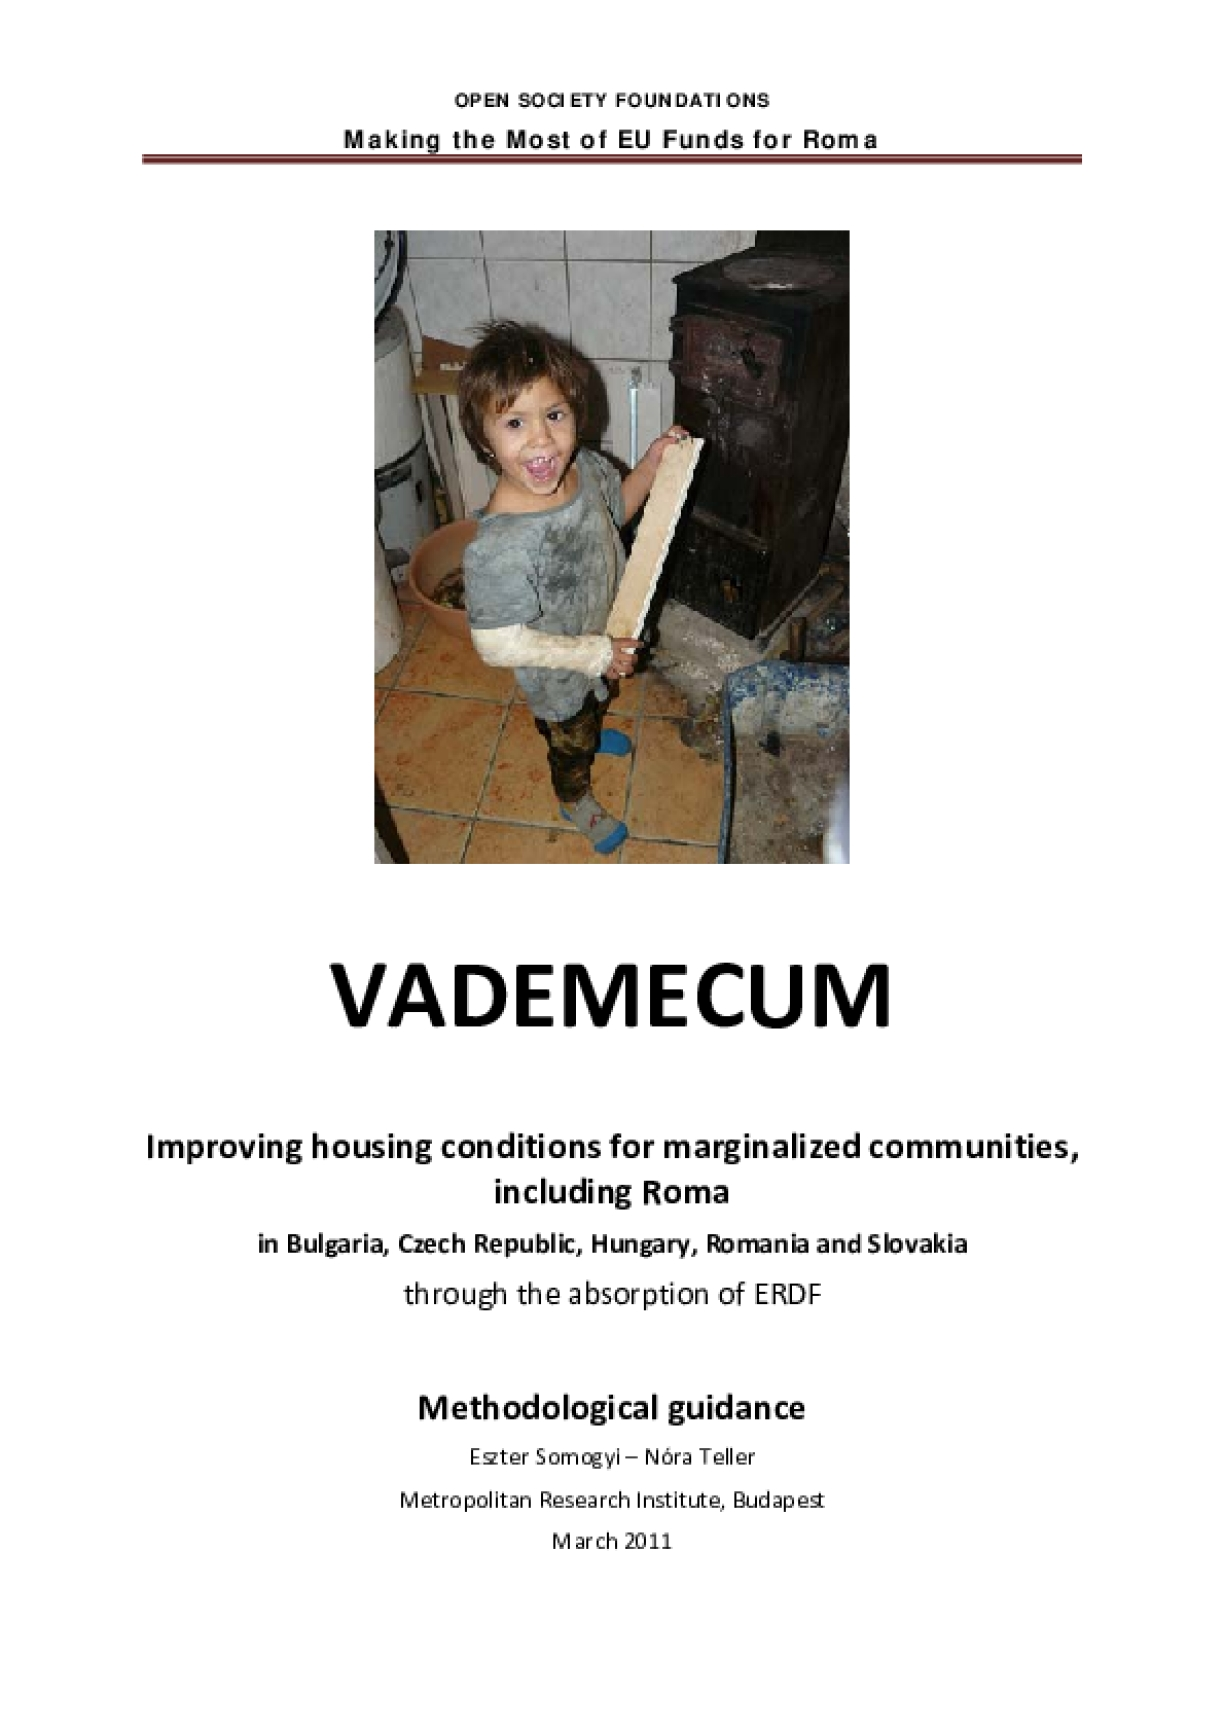 Vademecum: Improving Housing Conditions for Marginalized Communities Including Roma in Bulgaria, Czech Republic, Hungary, Romania, and Slovakia